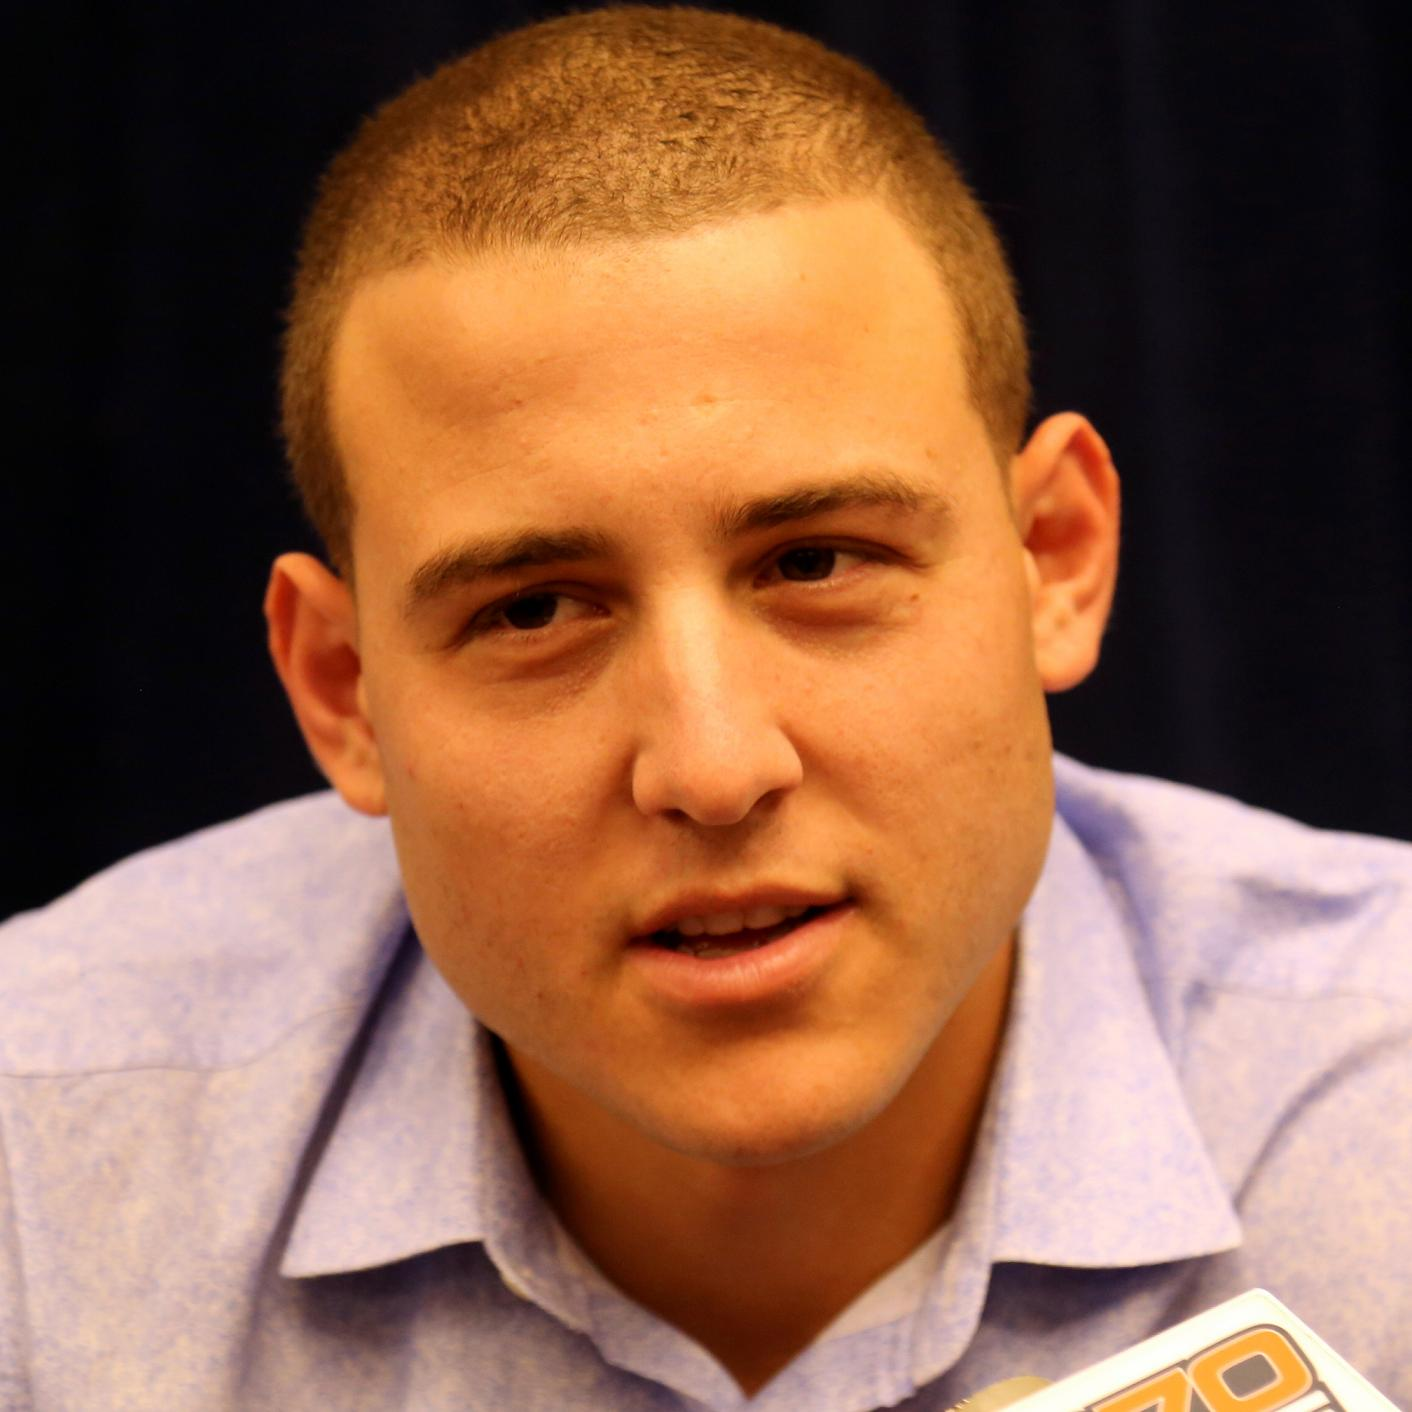 Anthony Rizzo Bio, Net Worth, Facts